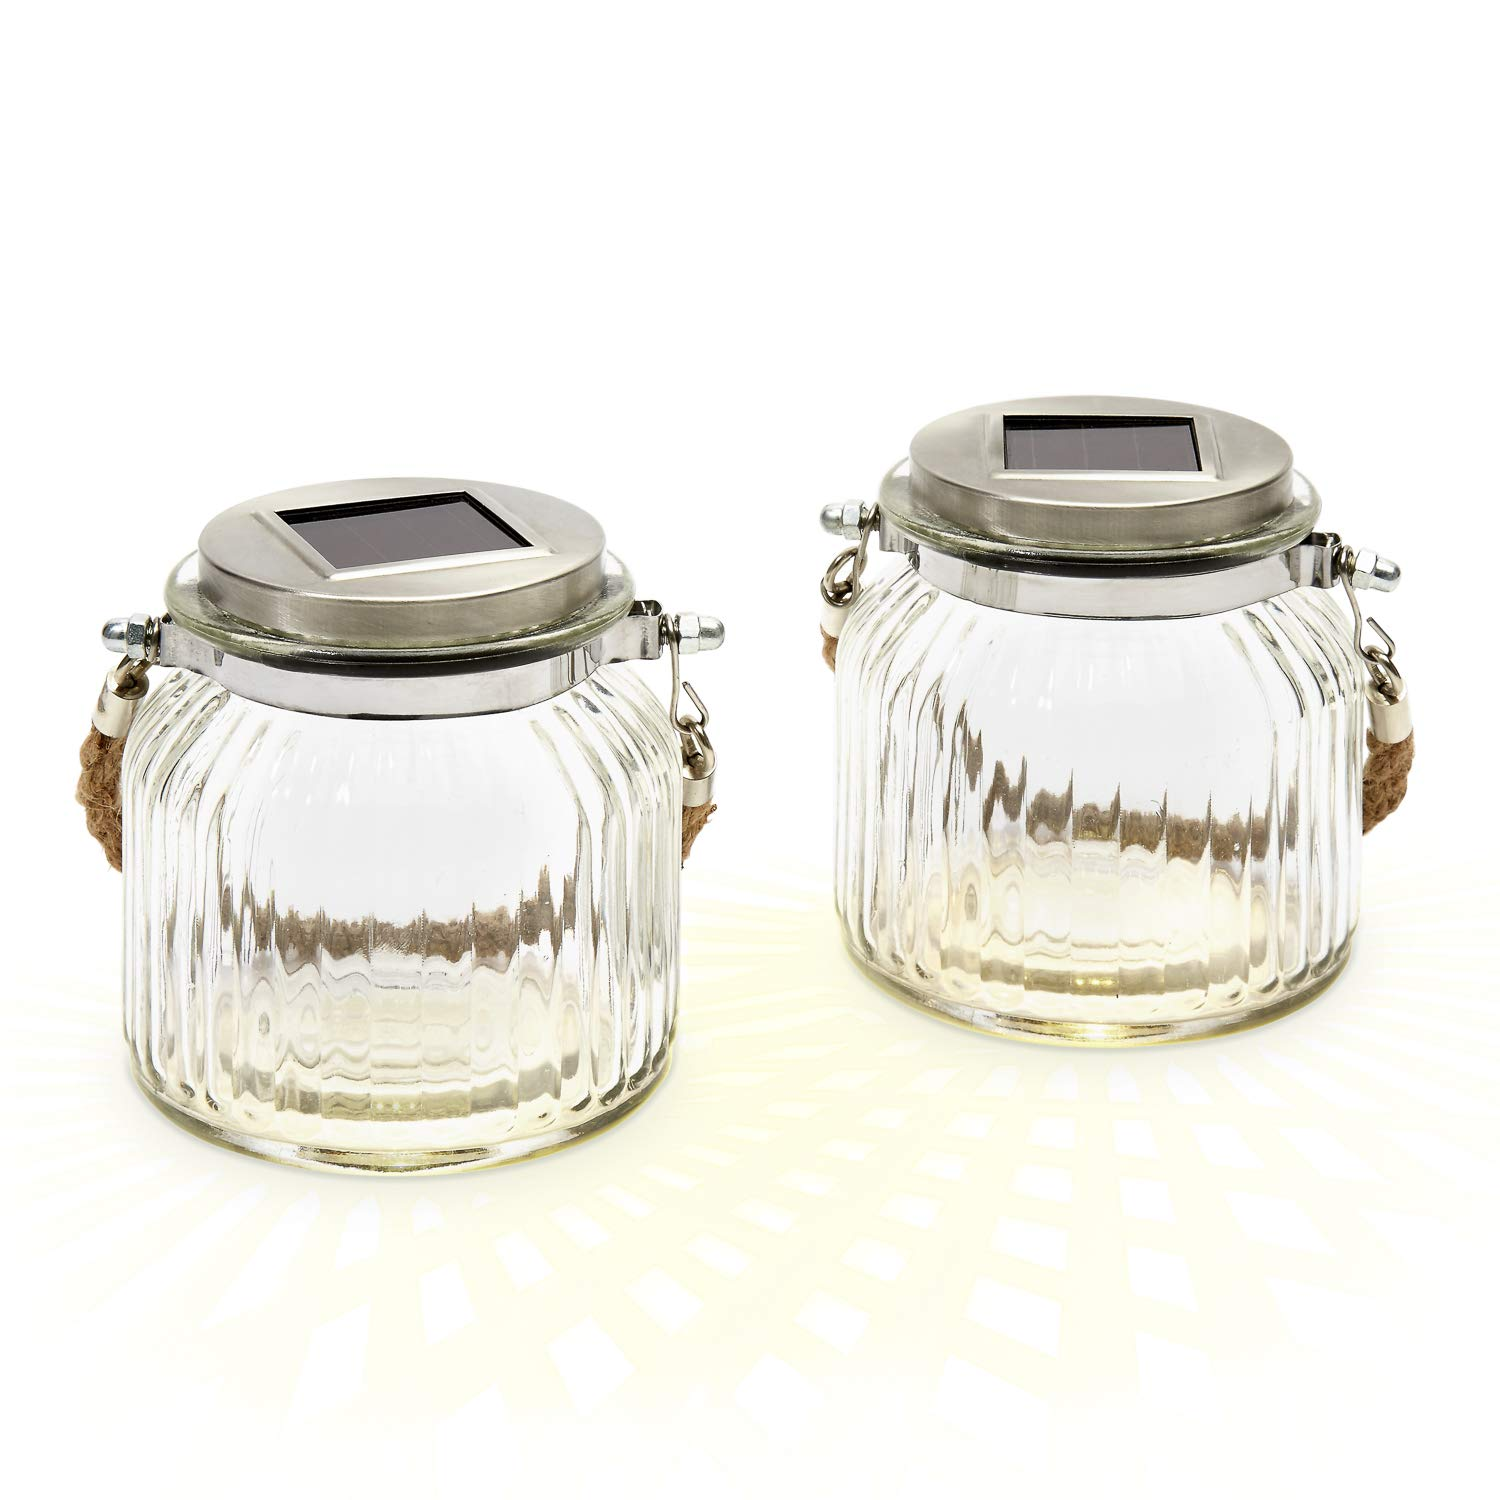 LampLust 2 Glass Solar Lighted Jars with Warm White LEDs, Nautical Rope Handles, Rechargeable Battery Included by LampLust